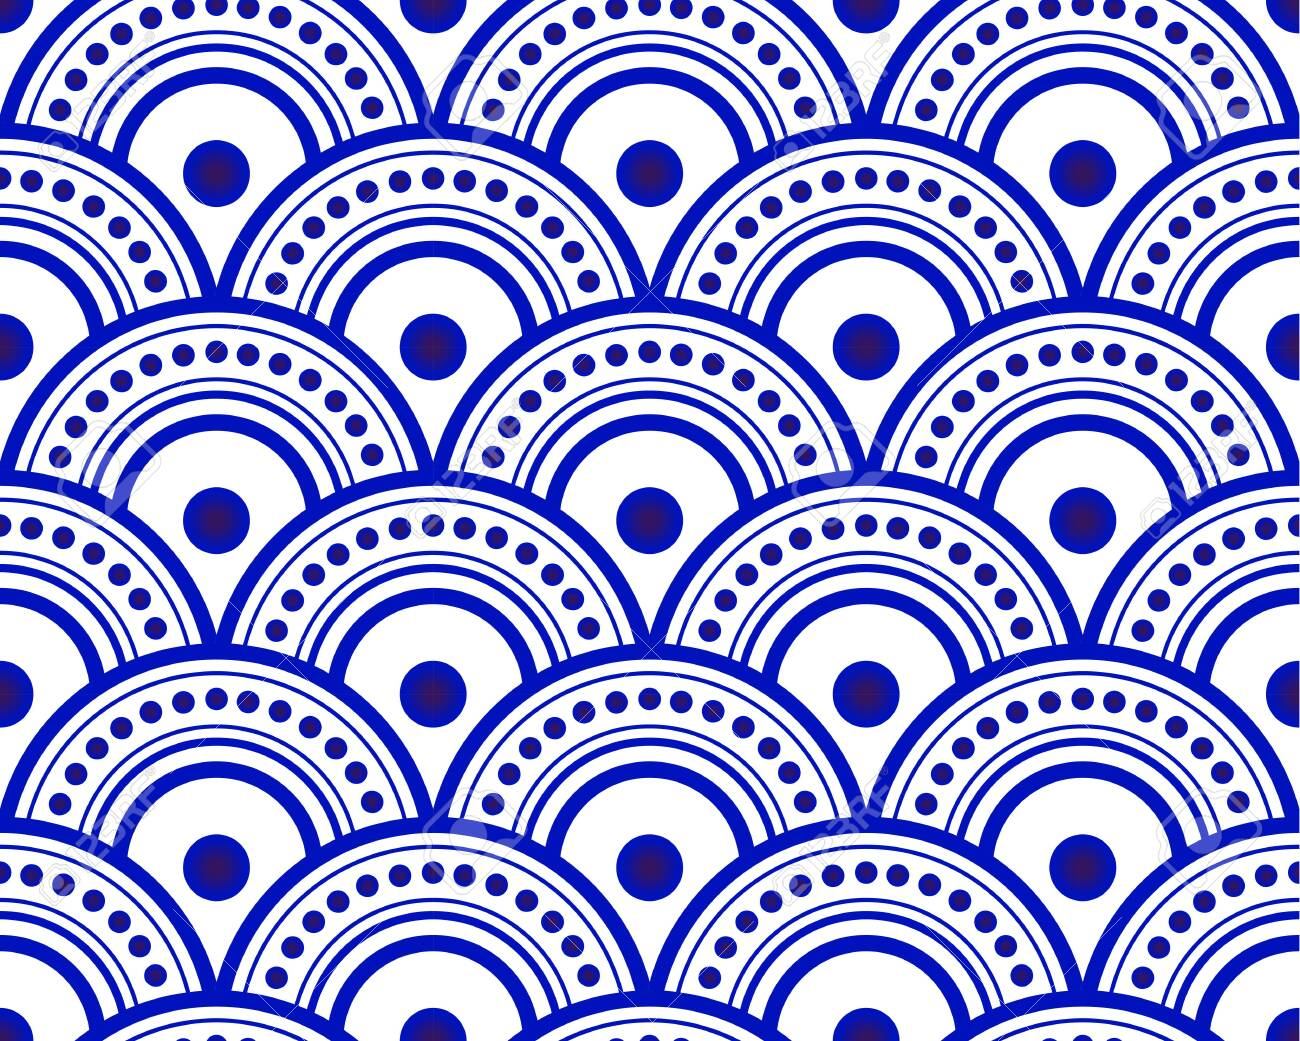 Blue And White Japan And Chinese Seamless Pattern For Design Royalty Free Cliparts Vectors And Stock Illustration Image 123745604